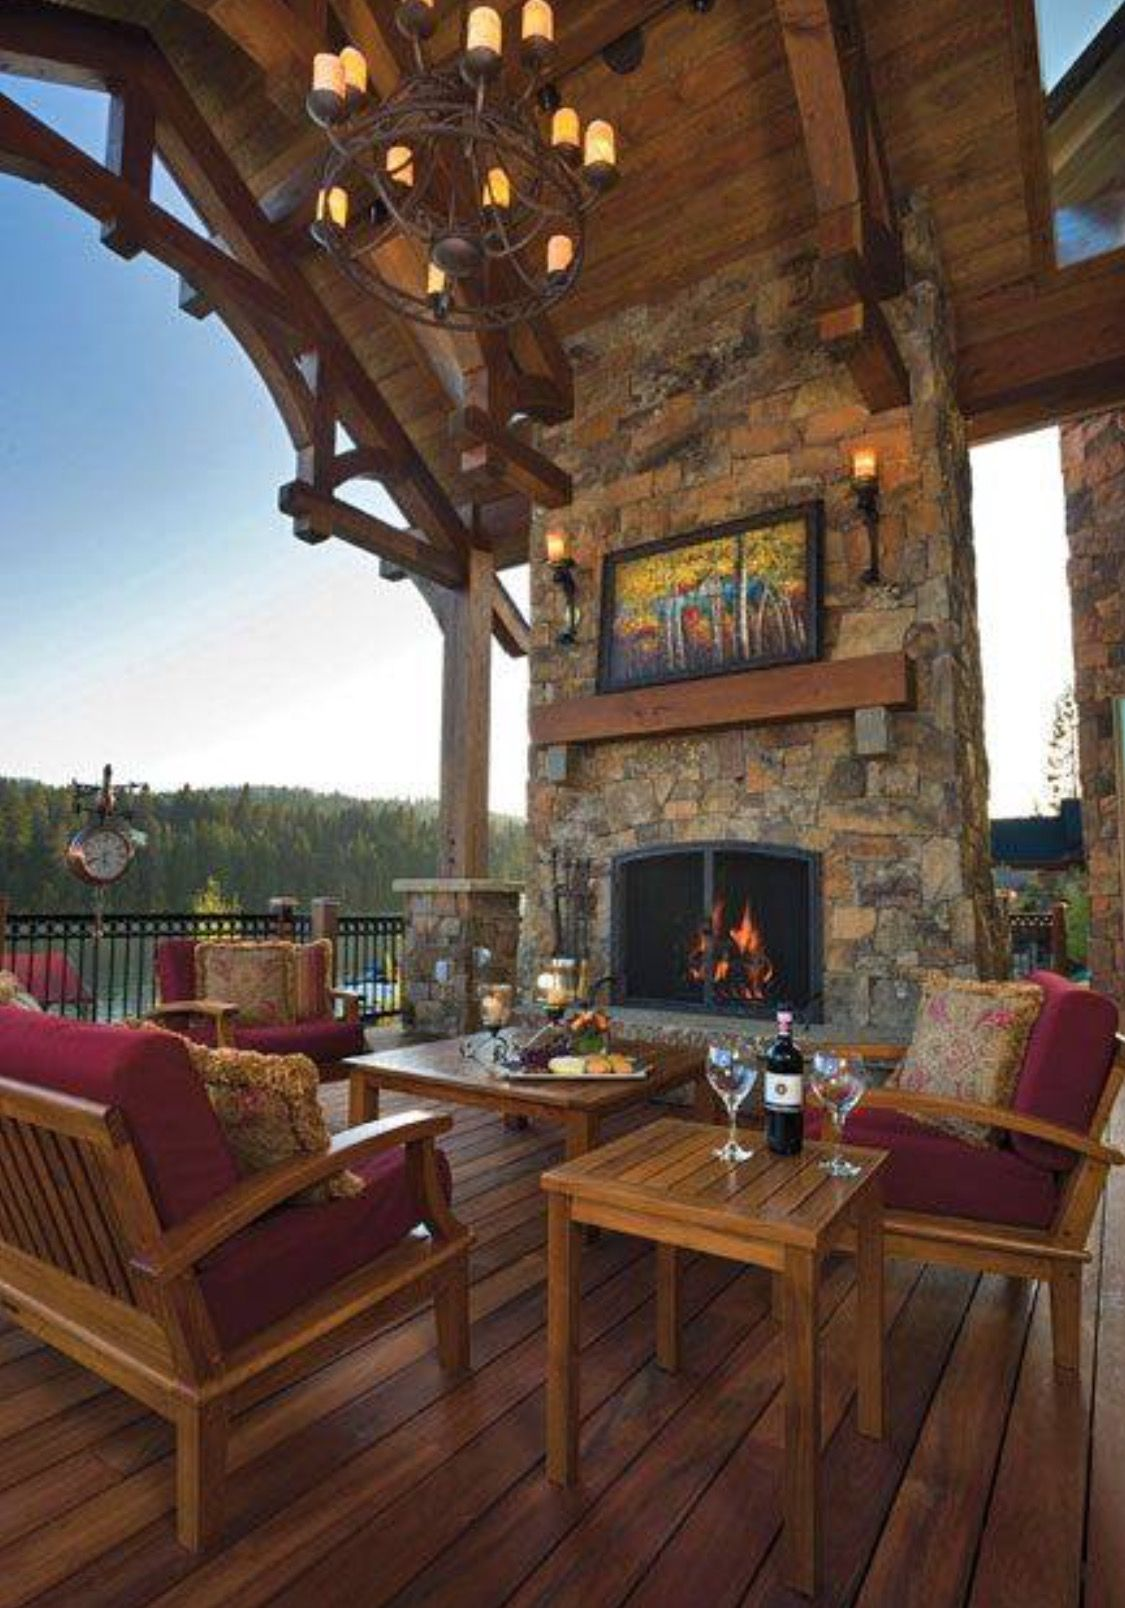 The Outdoor Living Room | ROOM AND BOARD...plus KITCHENS | Pinterest ...